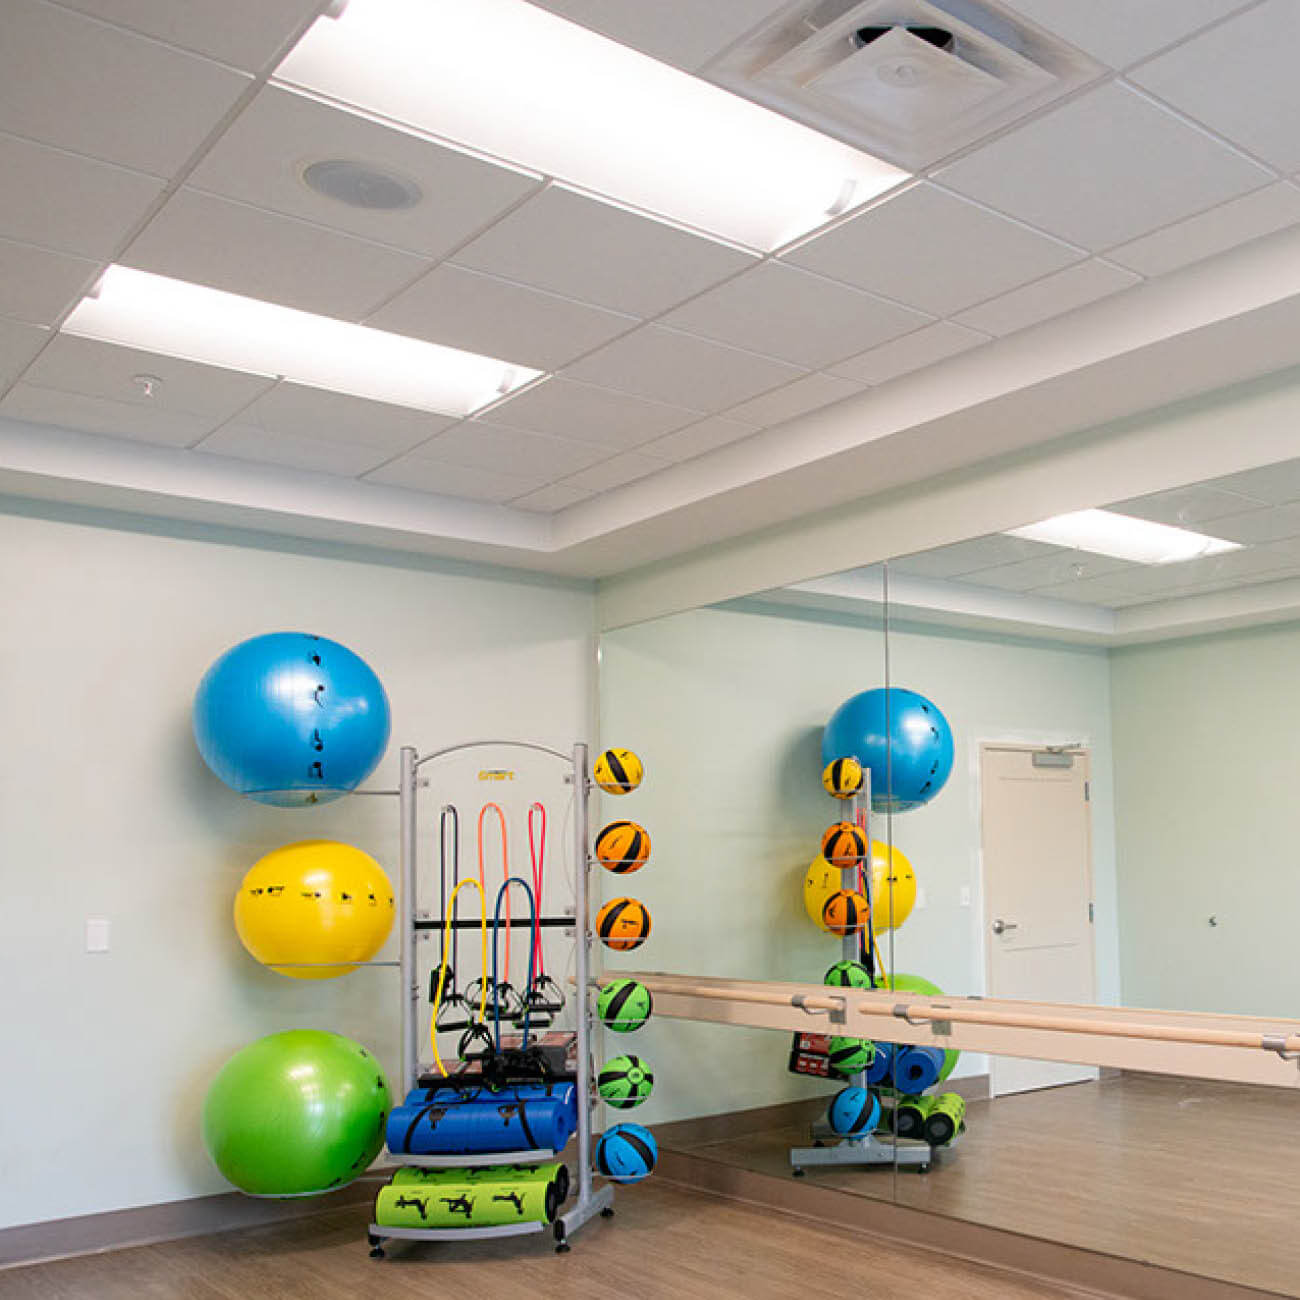 Fitness room at Highpoint at Cape Coral including large mirror, ballet bar, various weighted balls and other exercise accessories.